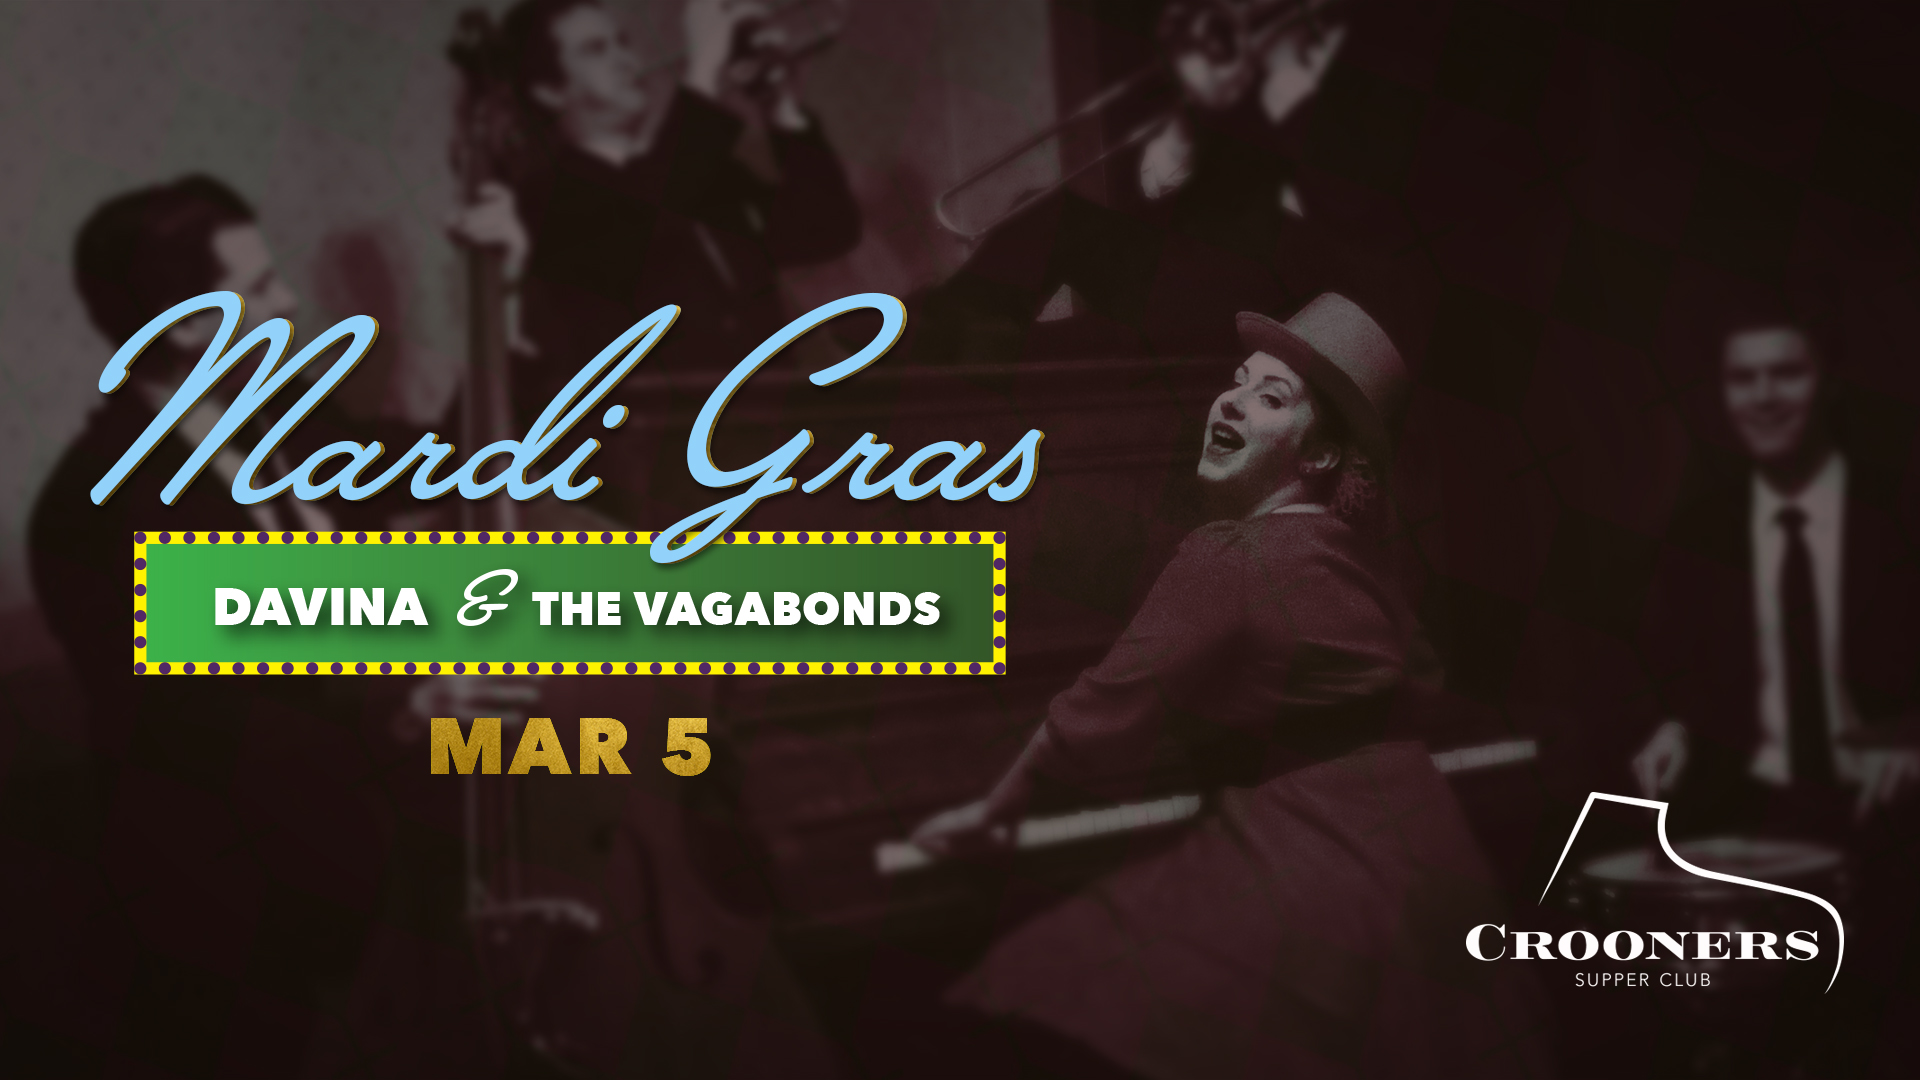 """Mardi Gras with Davina & The Vagabonds - With a voice that """"is a complex, expressive, flexible instrument made of sugar and grit,"""" (Pamela Espeland of MinnPost), Davina and her saintly Vagabonds come marchin' in for a Mardi Gras musical feast like no other. Led by bandleader Davina Lozier, Davina & The Vagabonds is one of this town's favorite and most exciting acoustic ensembles!"""